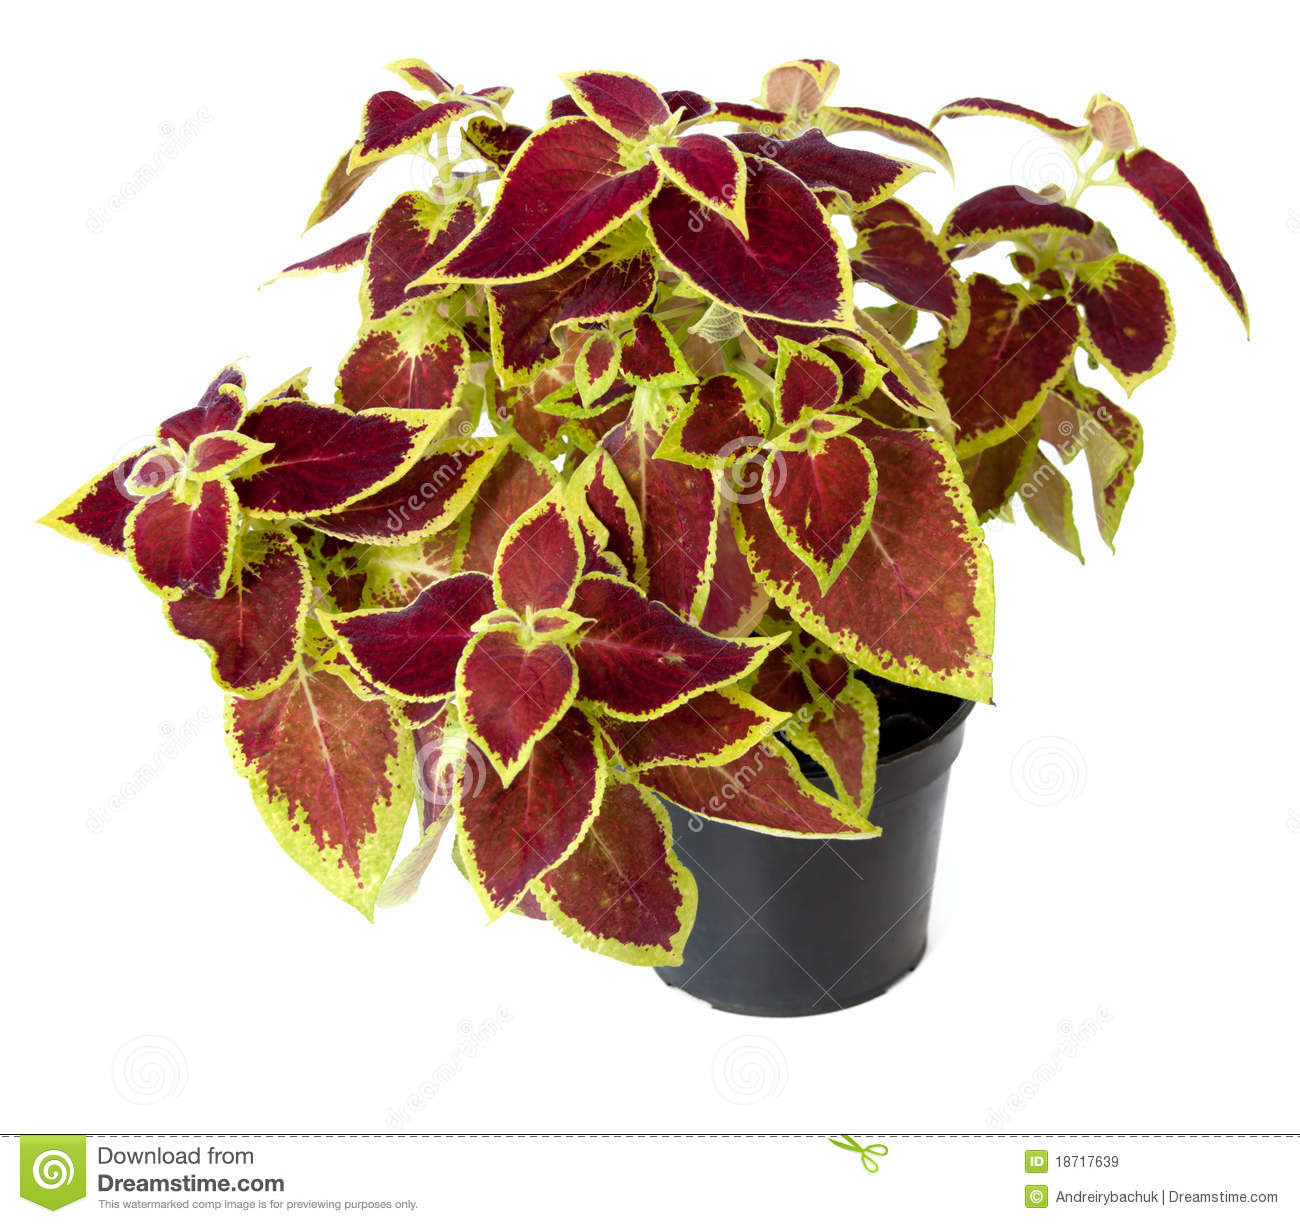 Coleus clipart #18, Download drawings